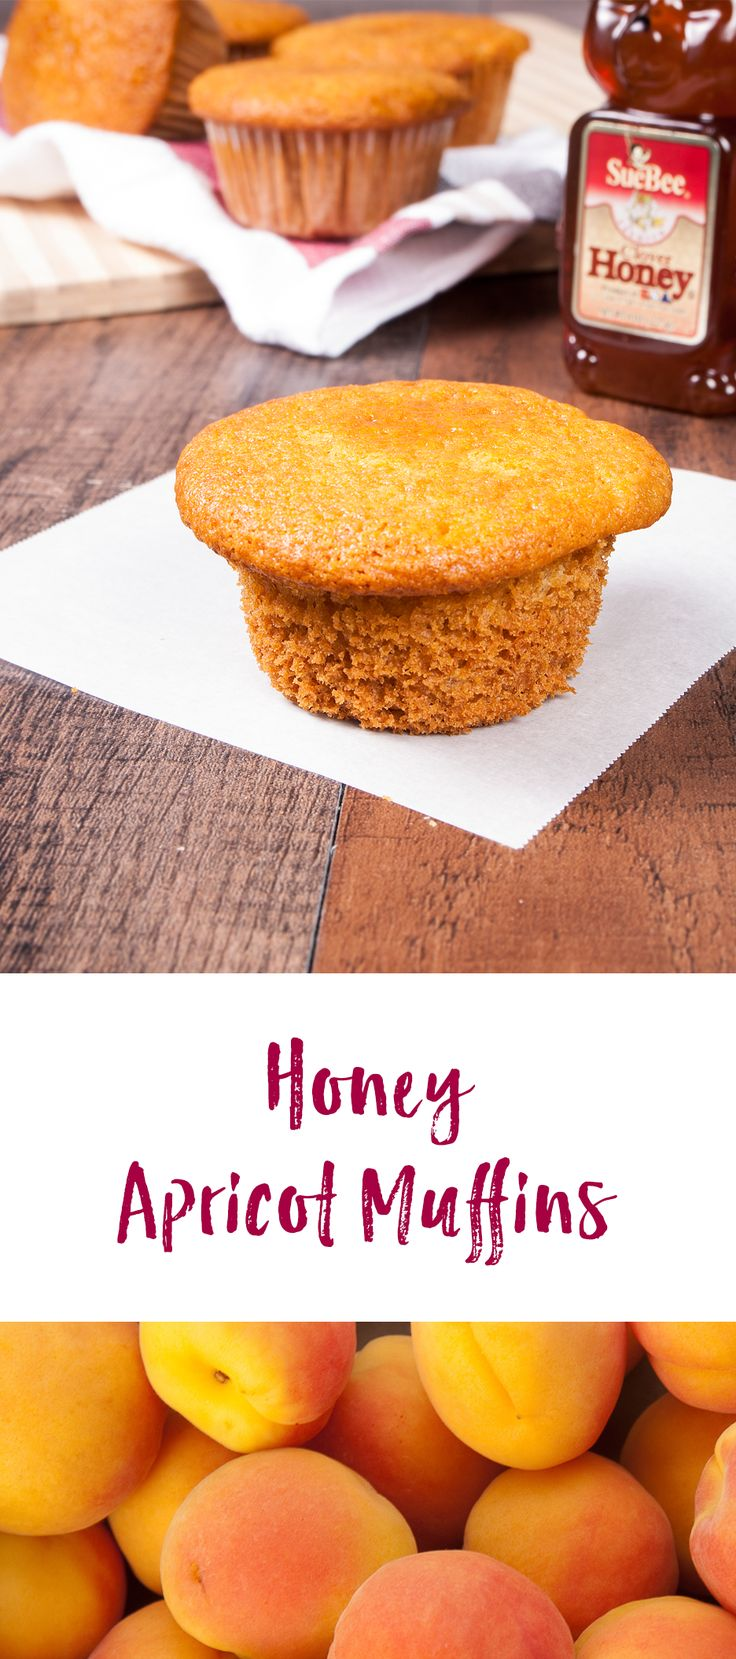 These Honey Apricot Muffins are the bee's knees! Sweetened with honey and dried apricots, these muffins are delicious, healthy and perfect for those mornings when you're on-the-go!